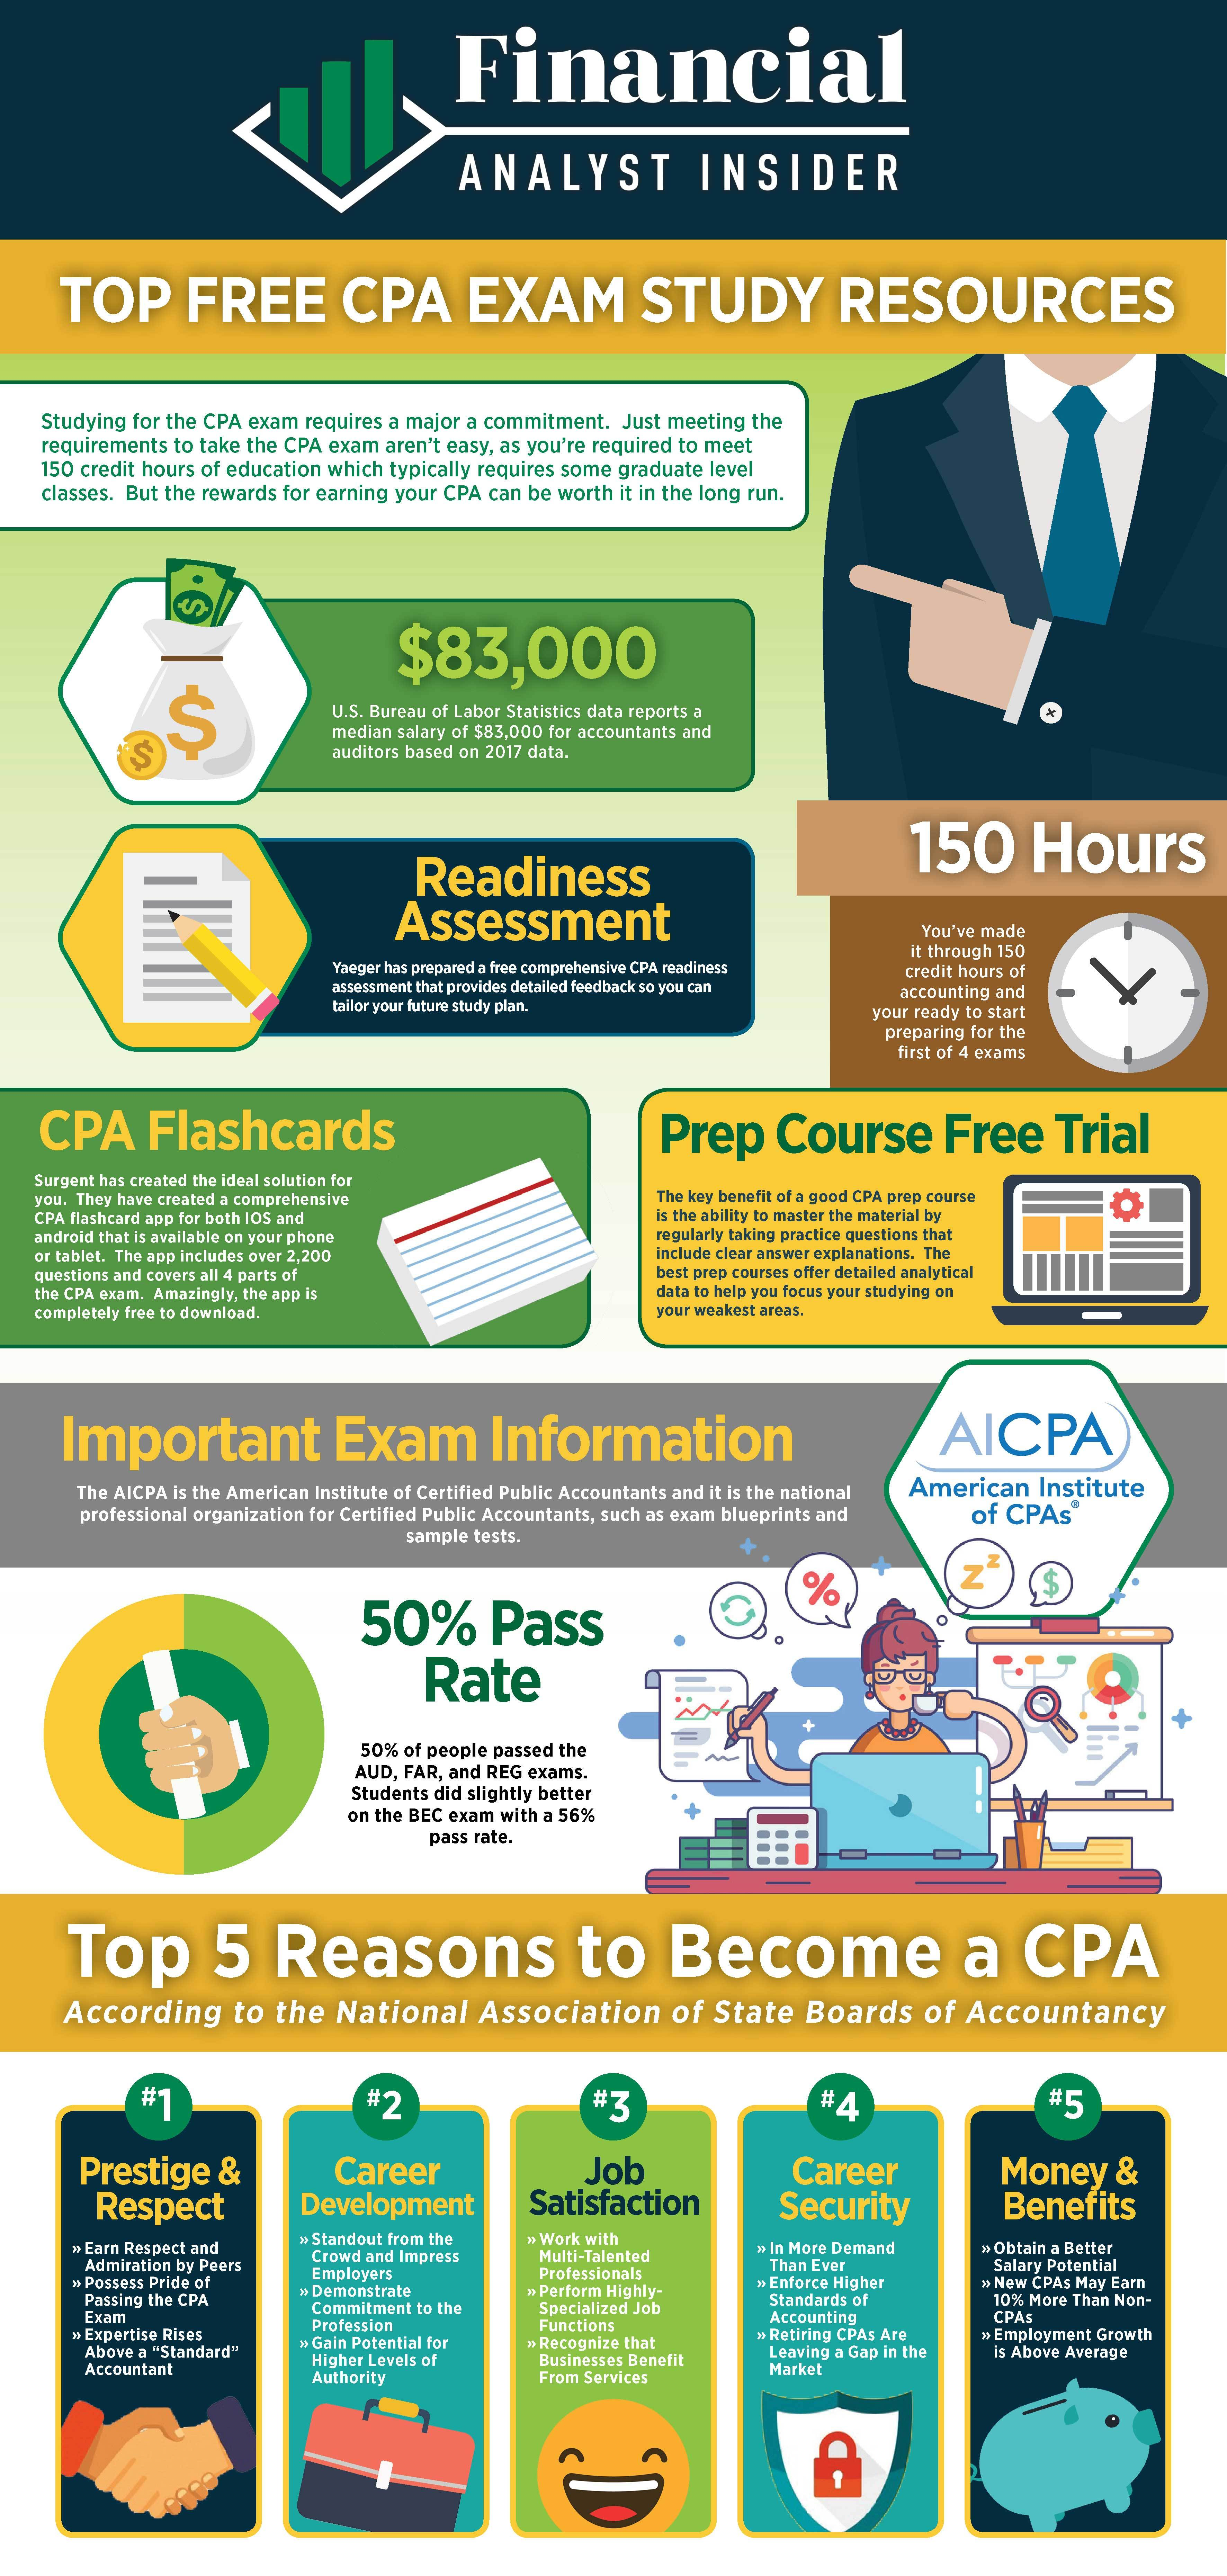 Free CPA Study Material Resources #cpa #cpaexam #accounting #career